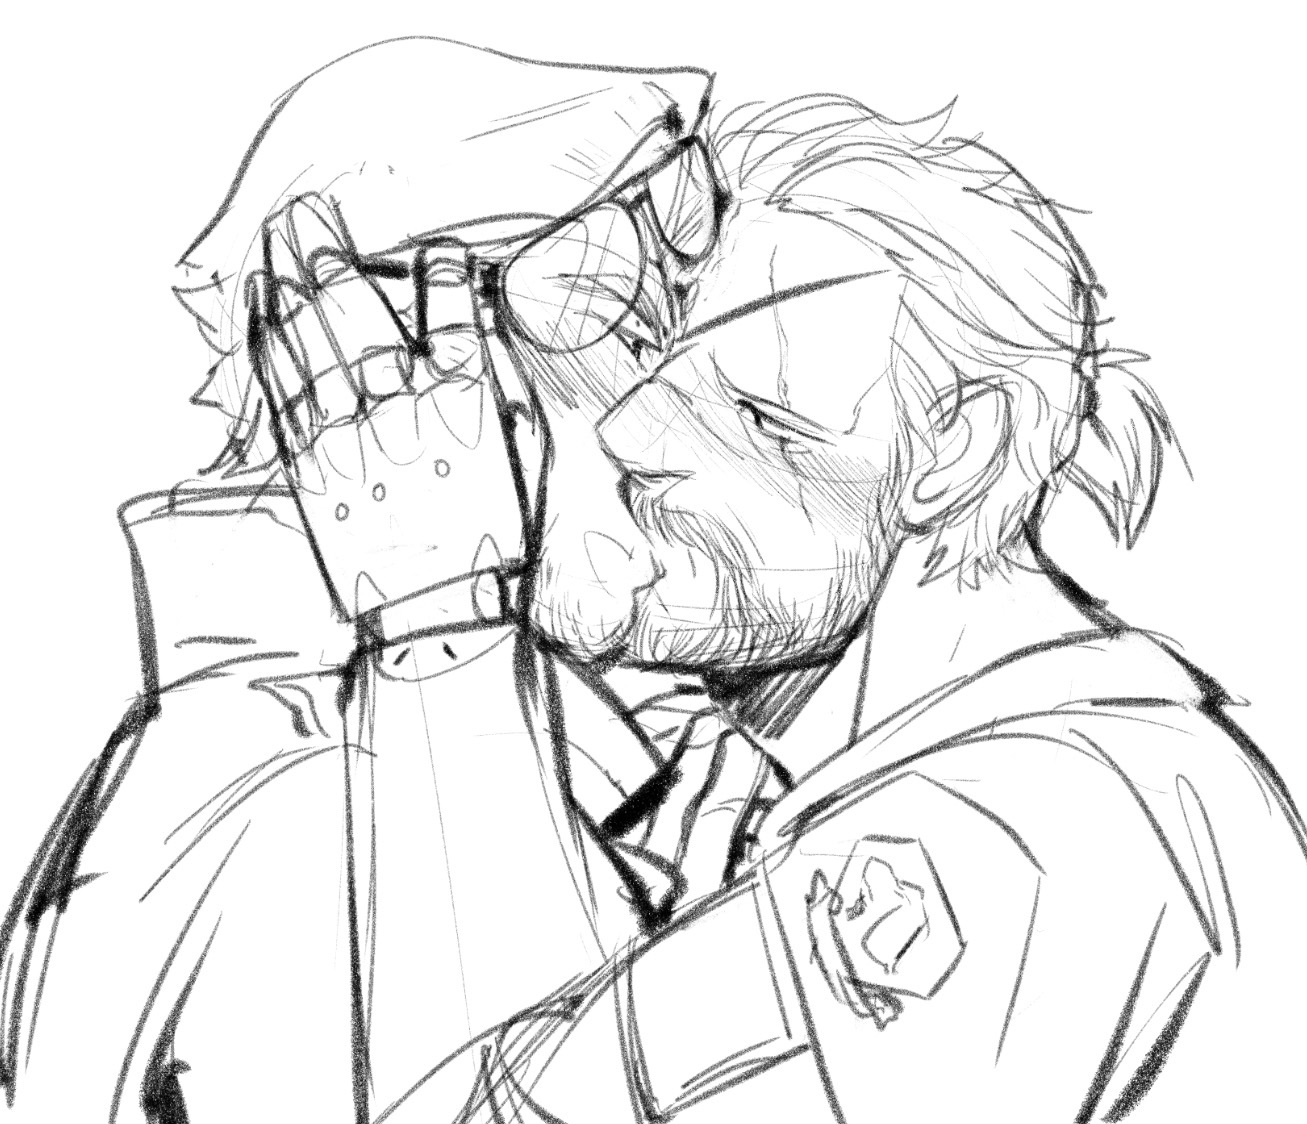 Searching For Kazuhira Miller Kazuhira miller , also known as kaz and mcdonnell benedict miller , is a supporting character from the metal gear series. searching for kazuhira miller